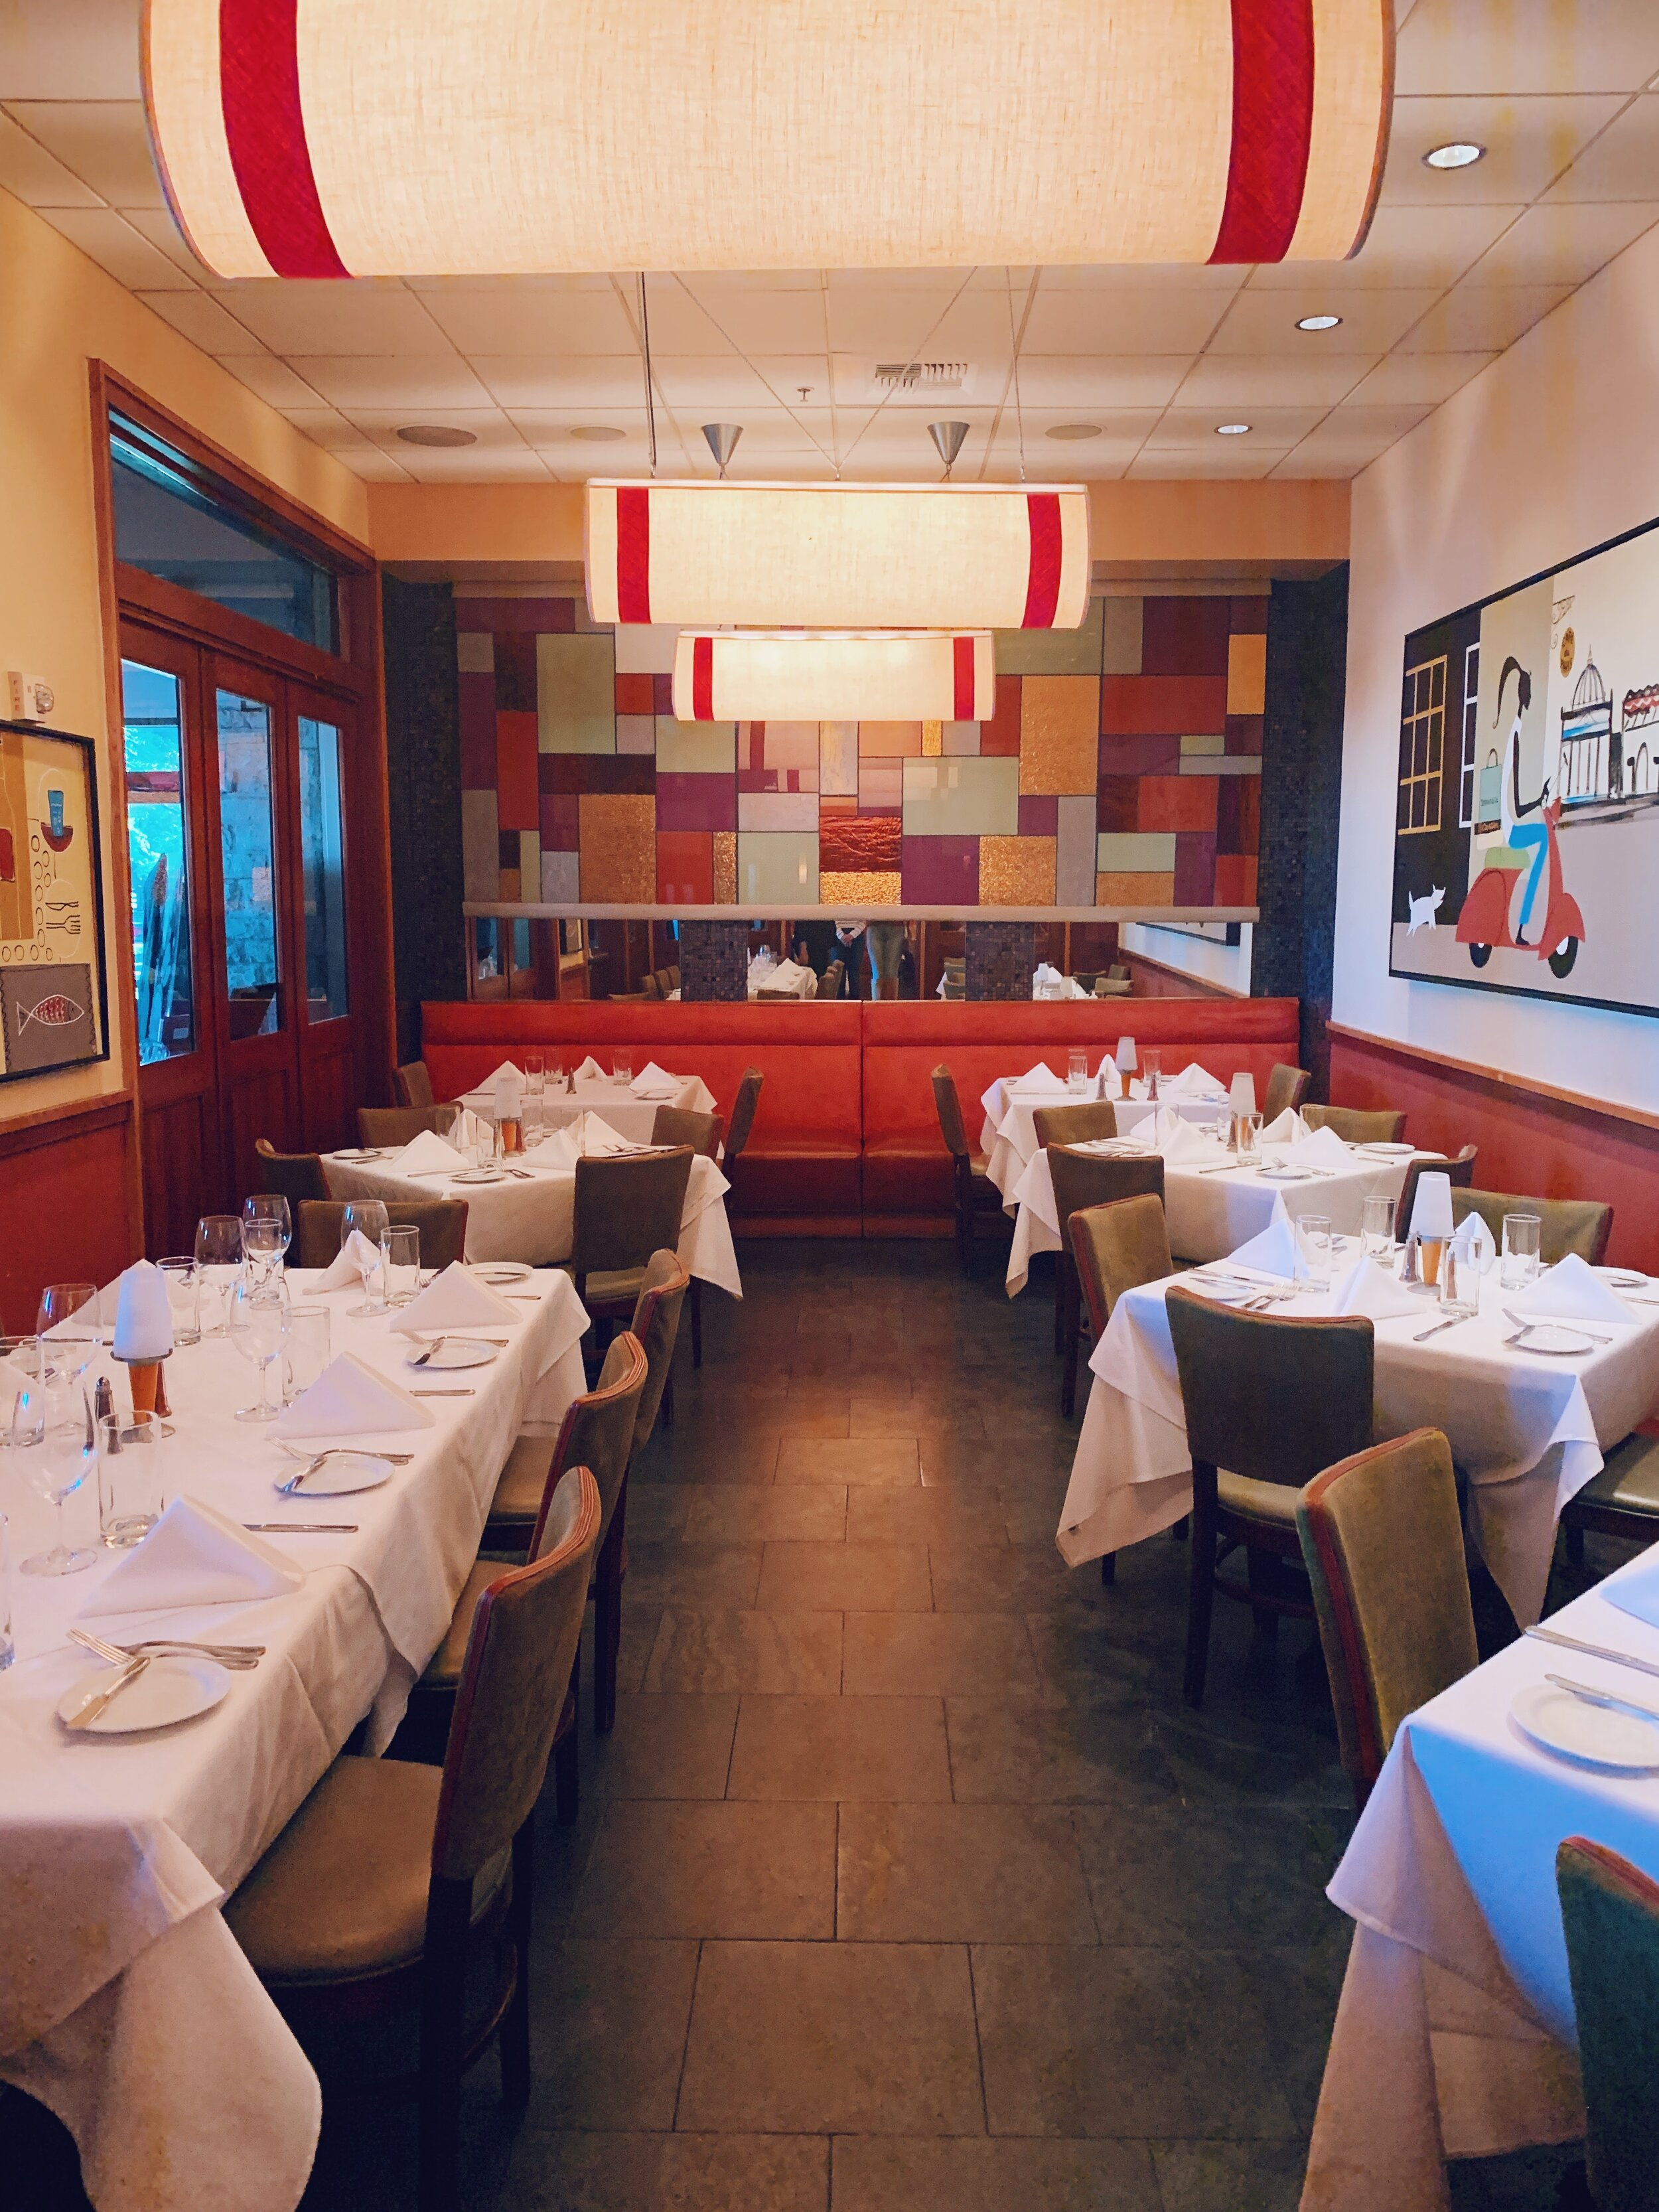 45 Options For Group Dining In Dallas Dallasites101